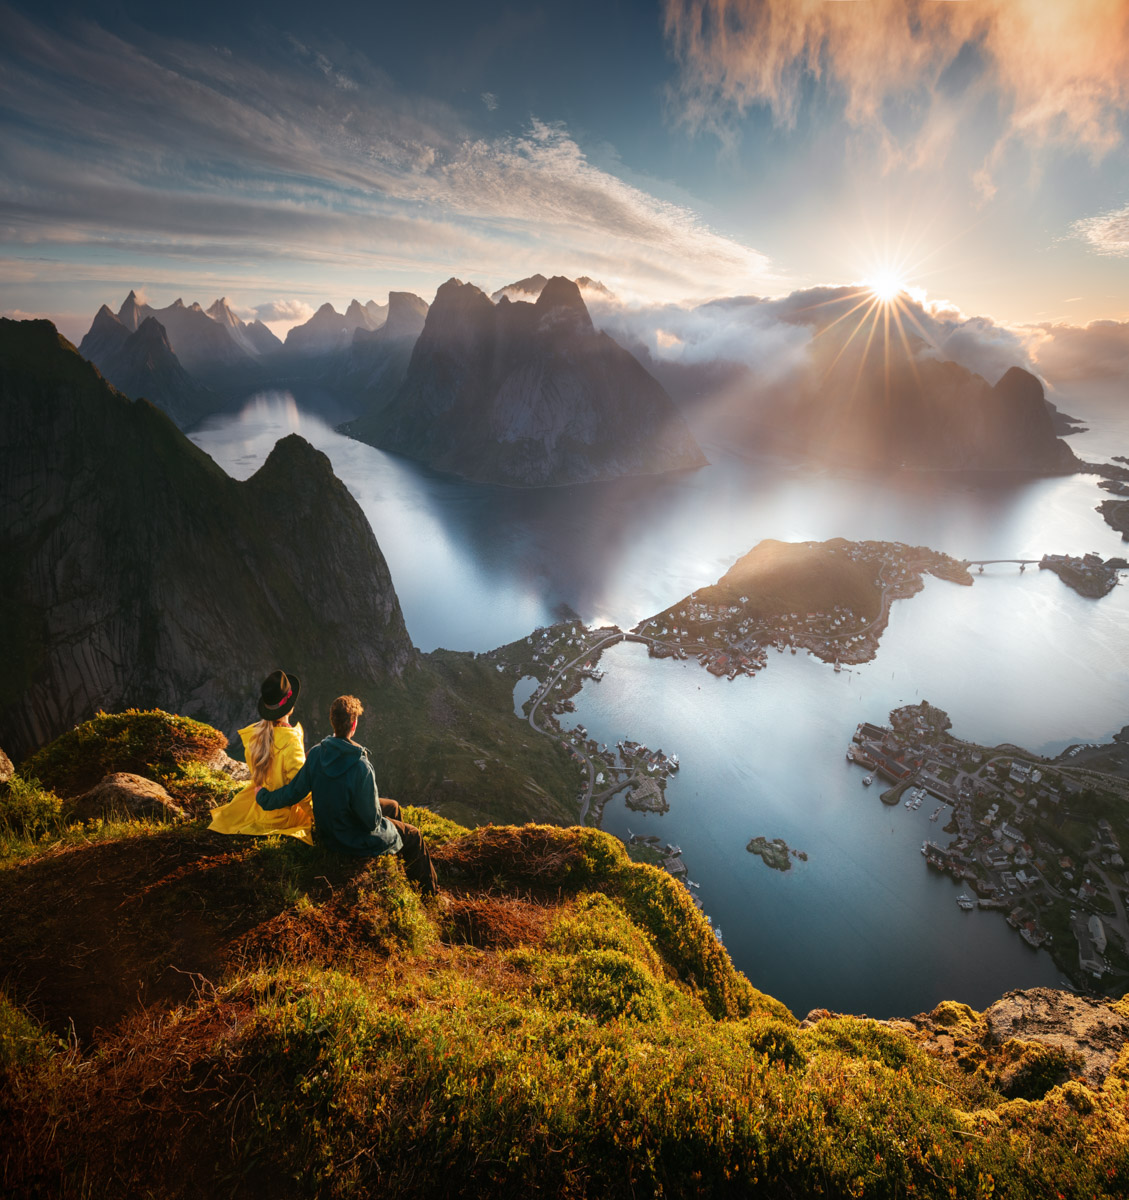 norway_lofoten_tomas_havel_6.jpg